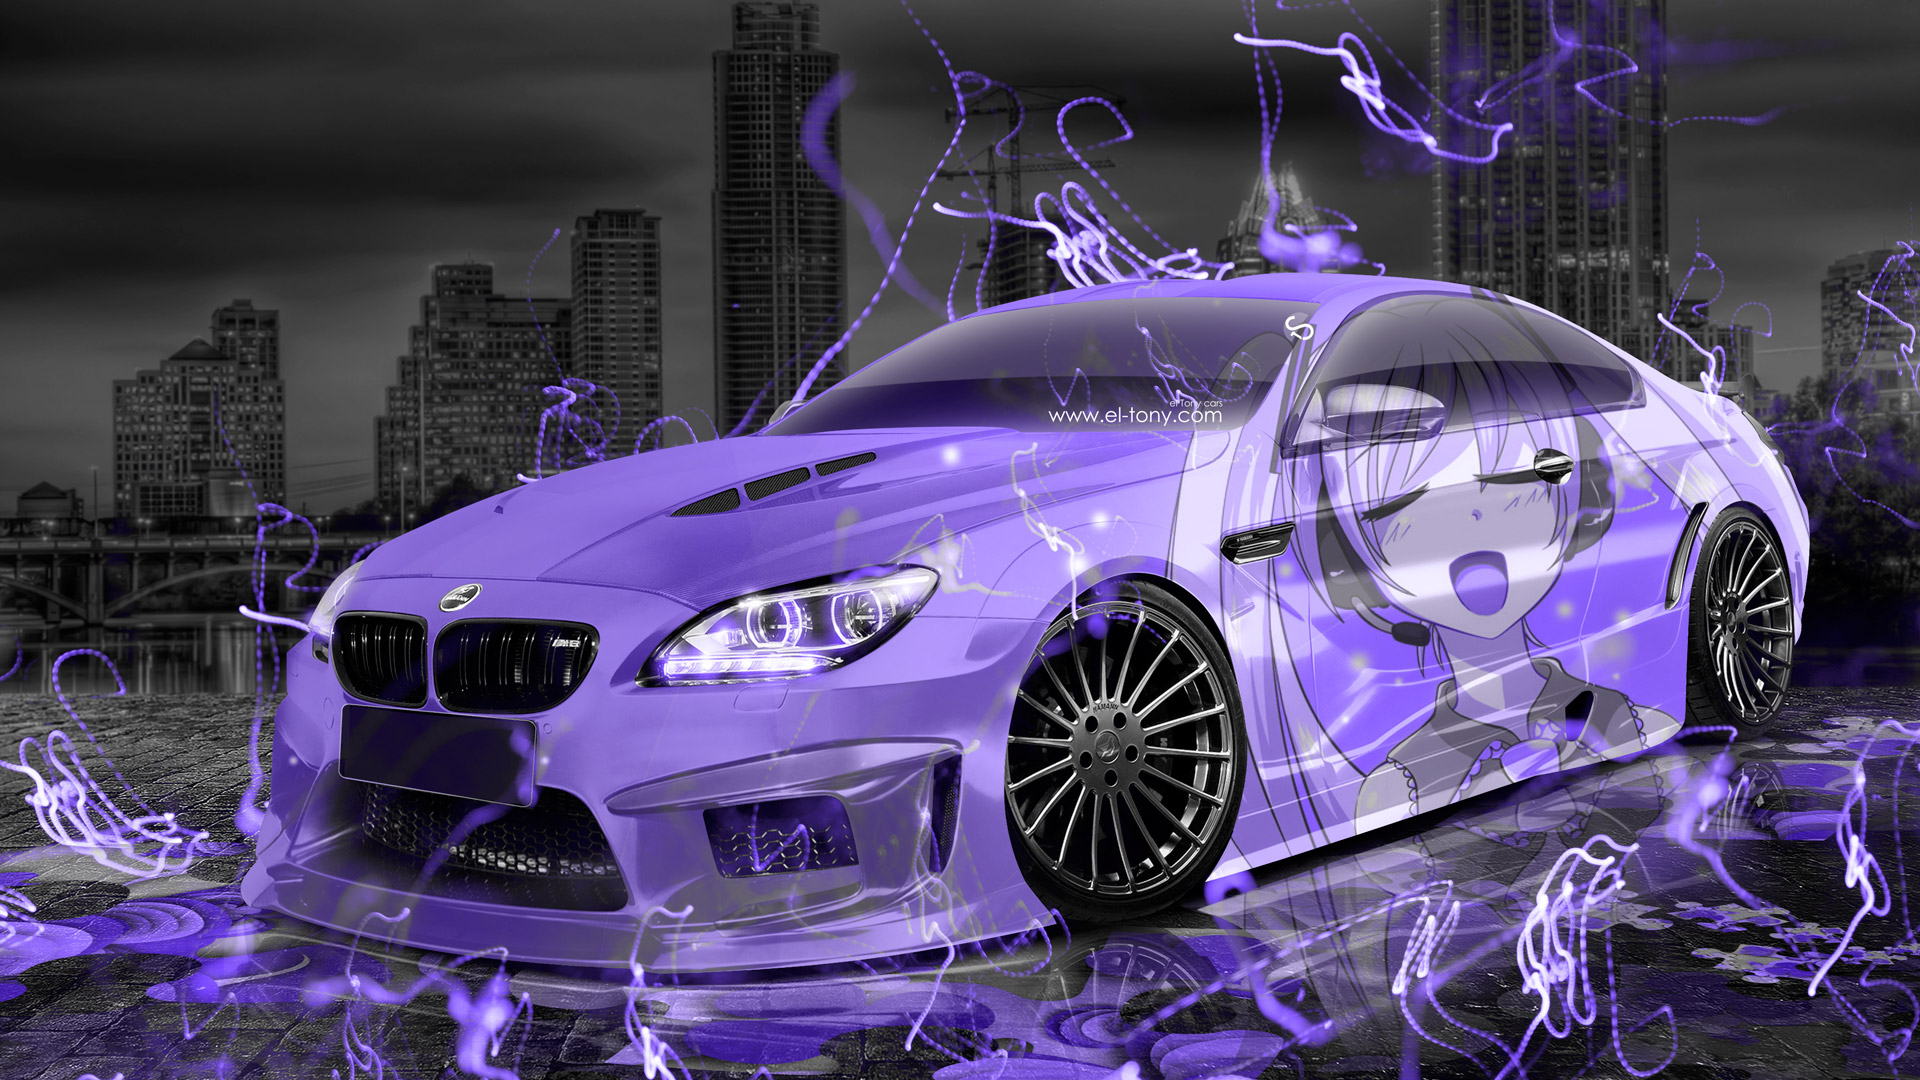 Cool Wallpaper Music Violet - BMW-M6-Hamann-Tuning-3D-Anime-Girl-Music-Aerography-Car-2015-Art-Violet-Neon-Effects-HD-Wallpapers-design-by-Tony-Kokhan-www  Trends_15814.jpg